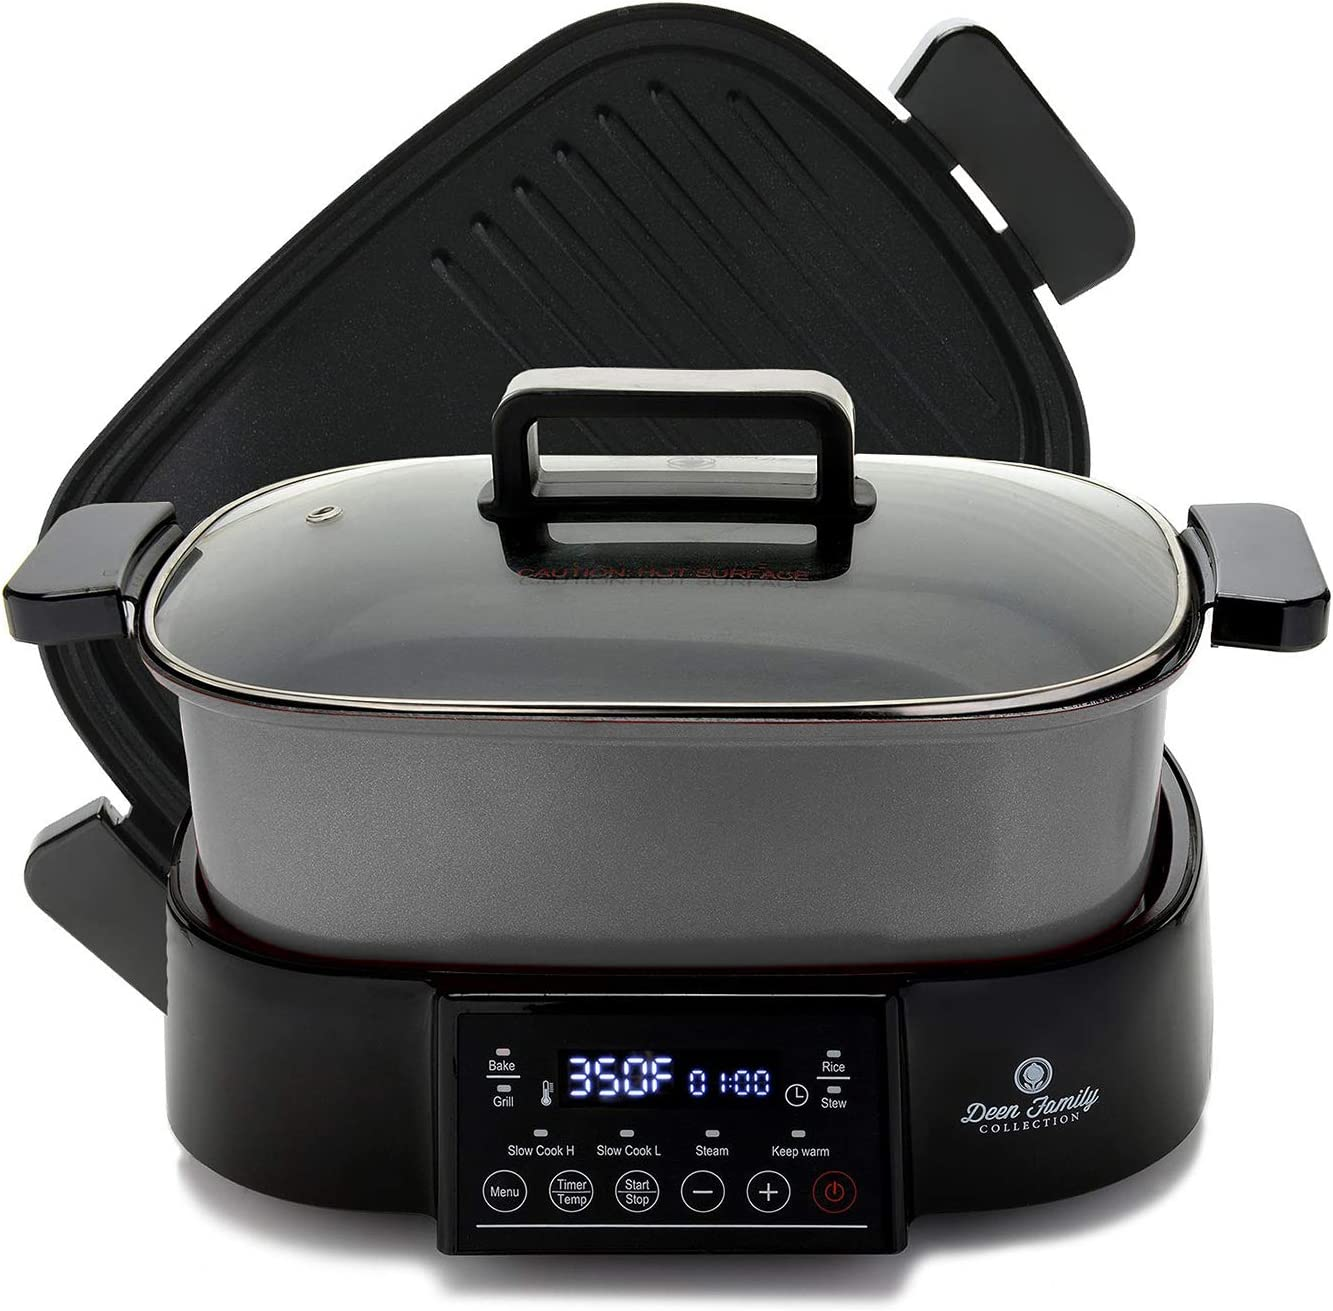 Deen Family 2-in-1 6QT (1250 Watt) Multi Cooker and Grill with Glass Lid, 8 Cooking Functions to Bake, Grill, Slow Cook High, Slow Cook Low, Steam, Keep Warm, Stew and Rice, Removable Pot and Grill Pan, Easy Clean Ceramic Coating (Stainless)